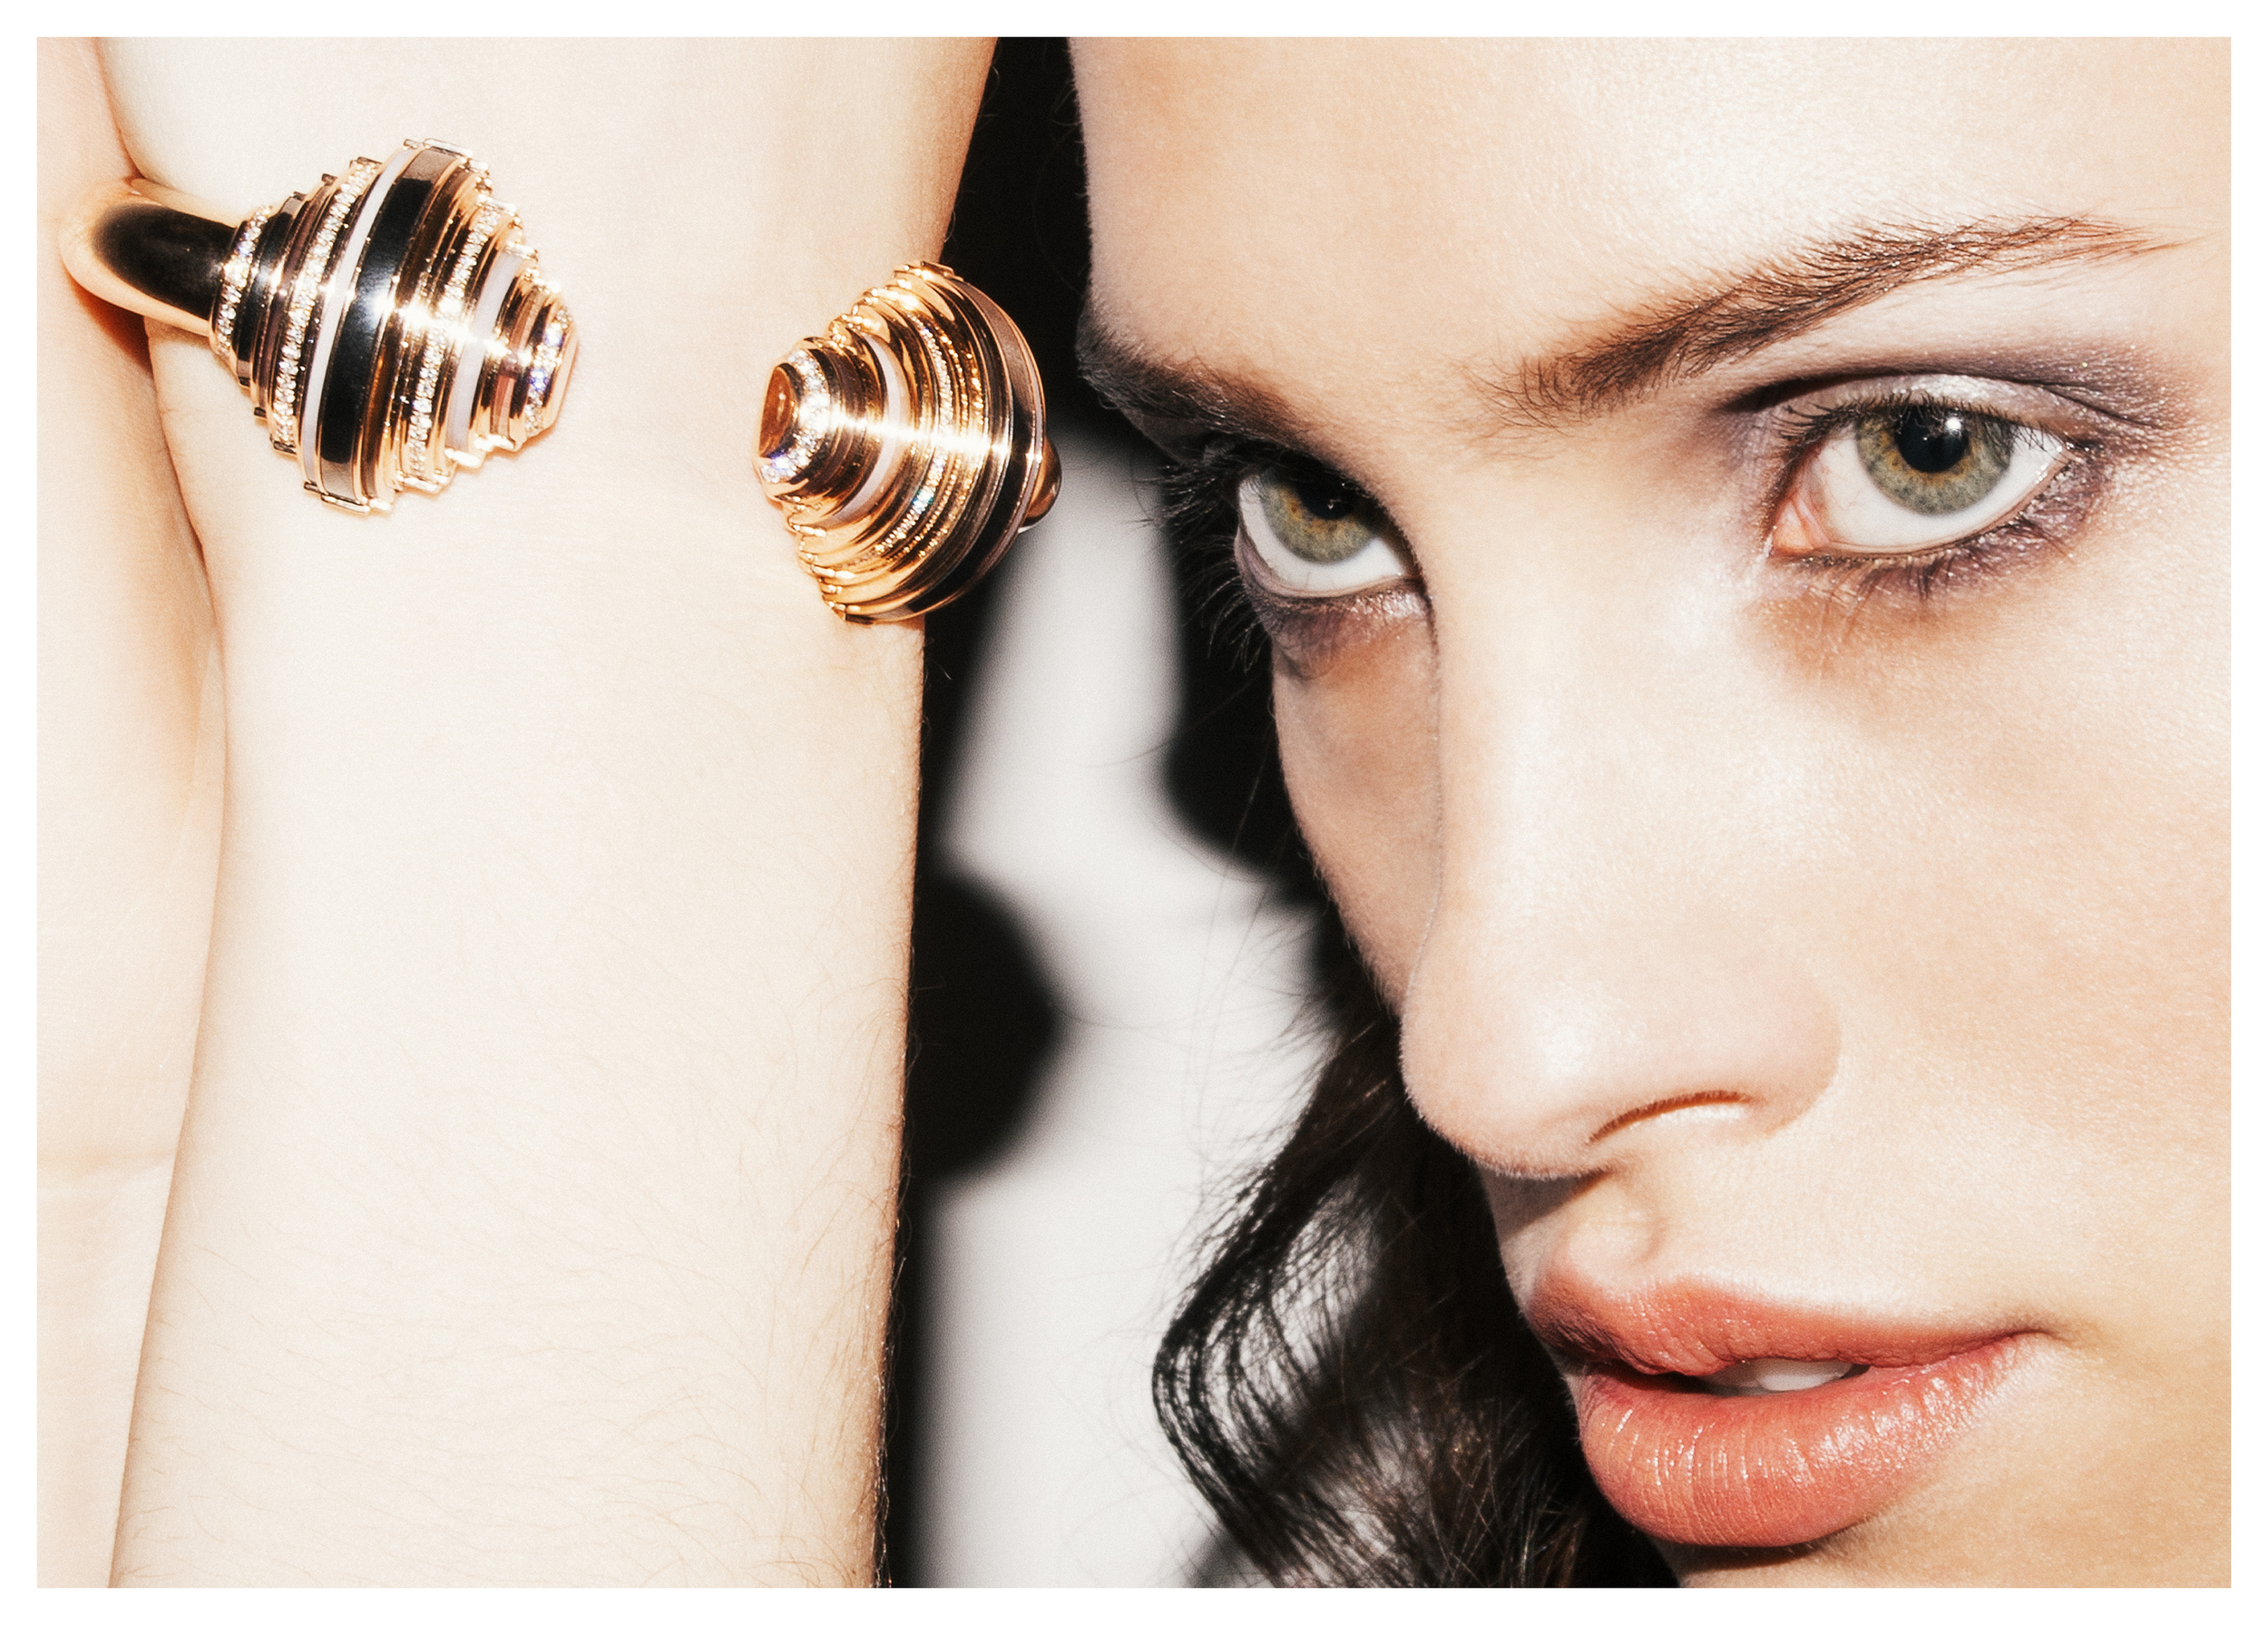 Cartier SS 13 Pop online Ellis Scott